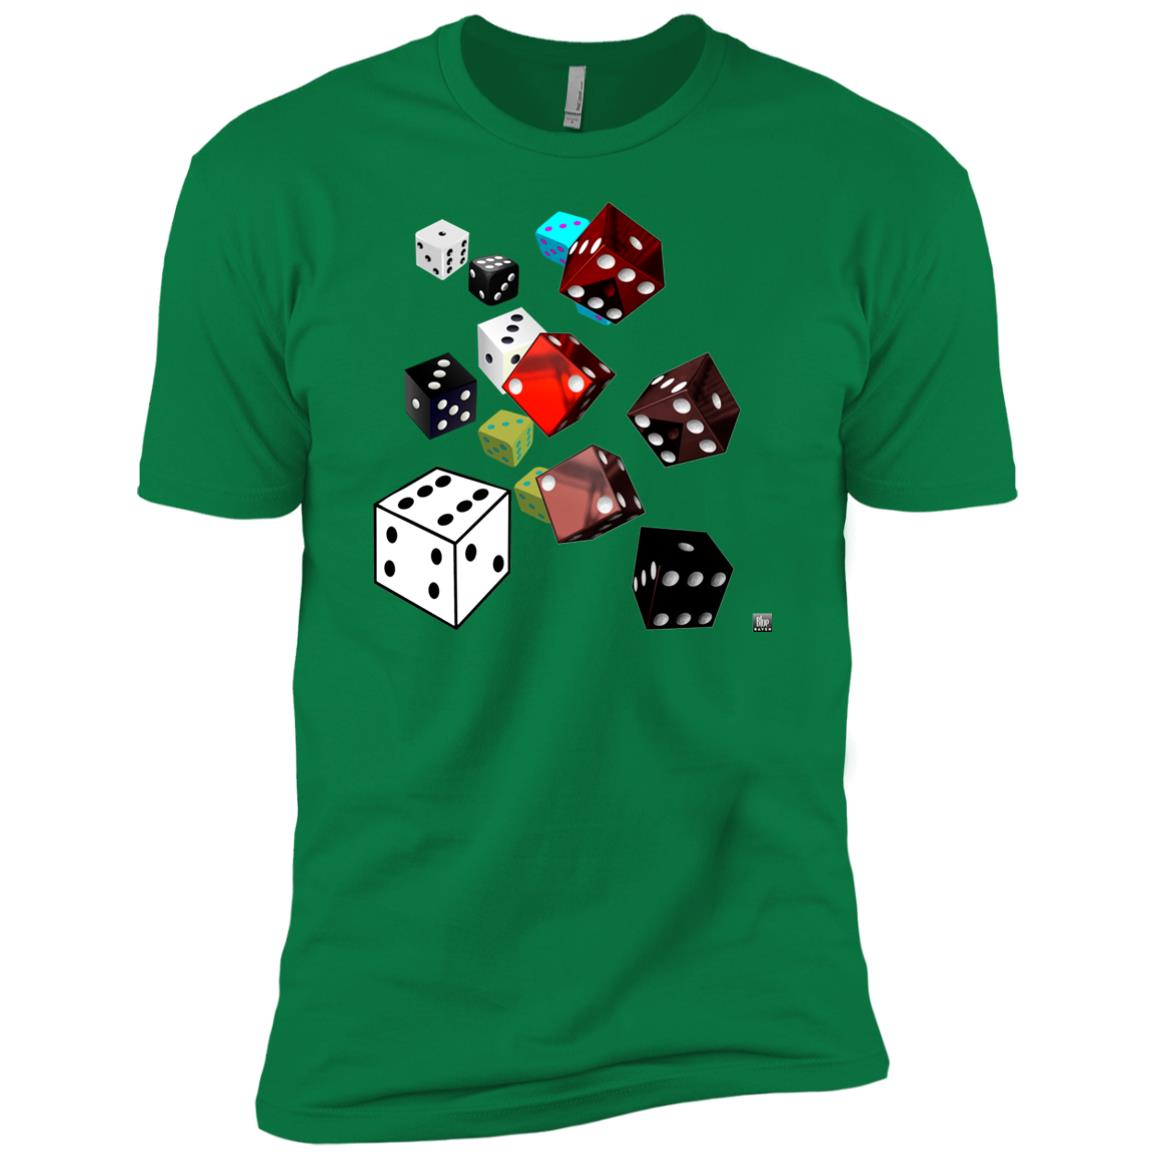 roll of the dice - Men's Premium Fitted T-Shirt